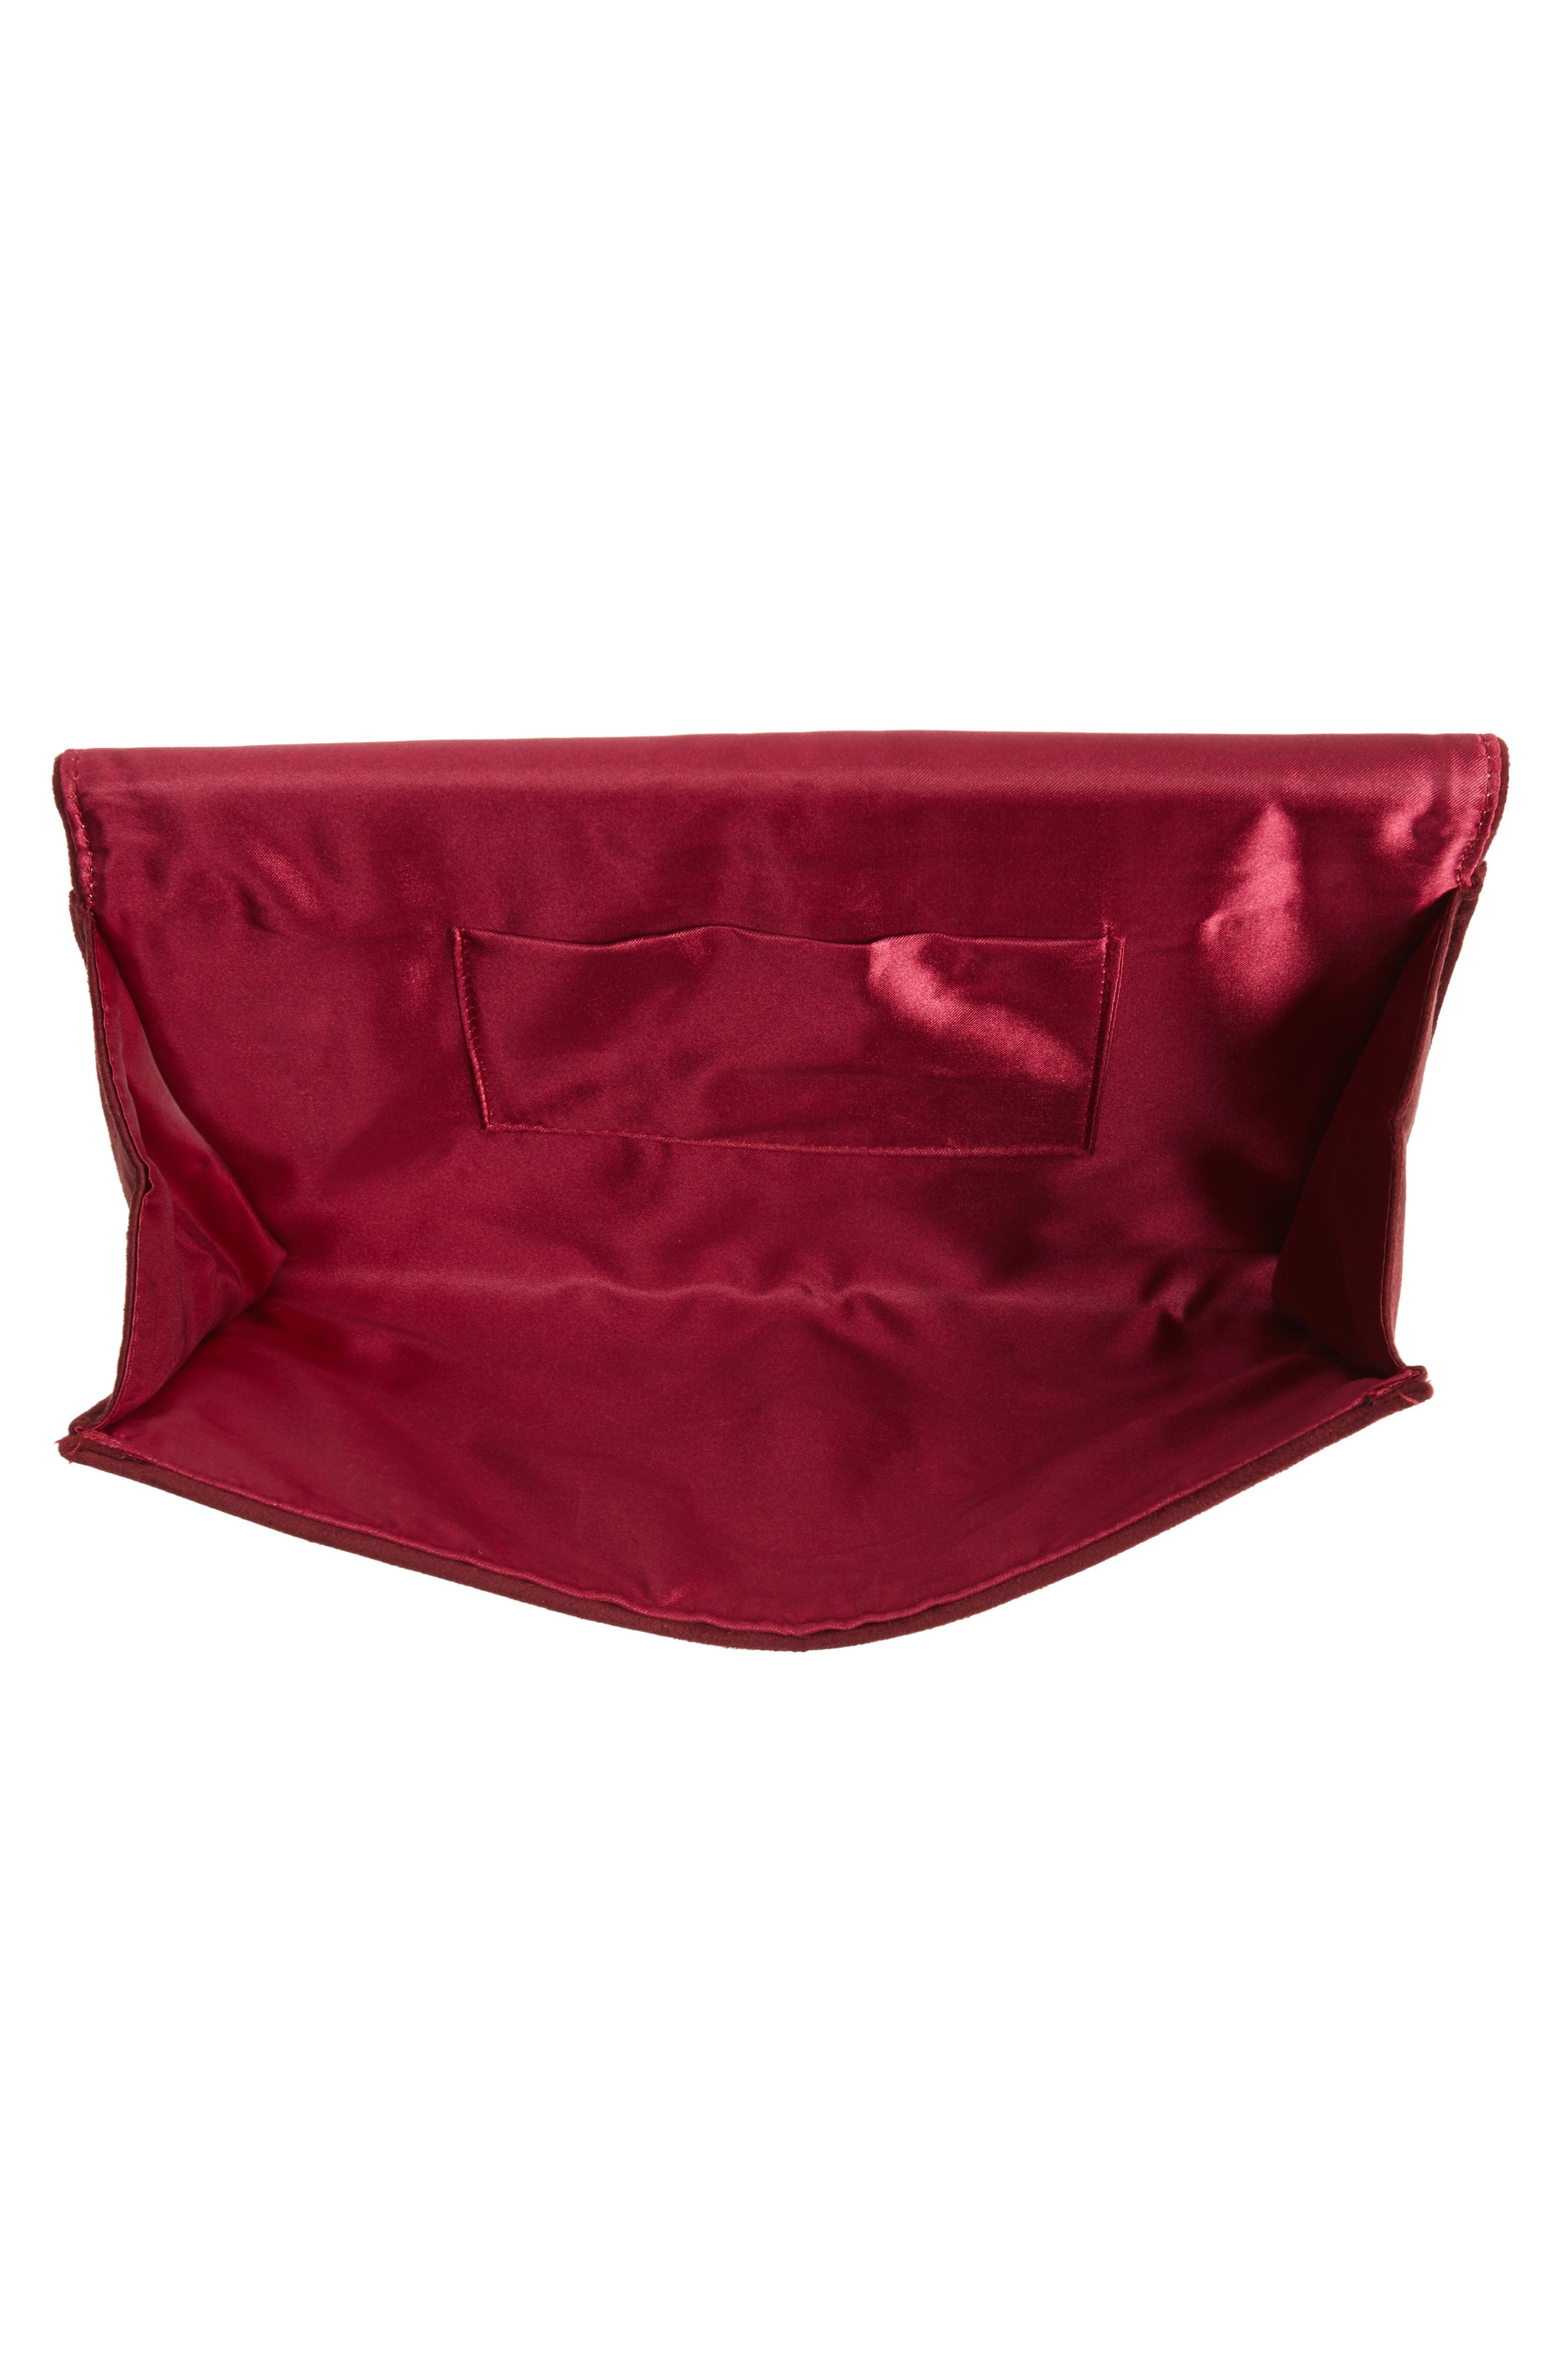 Rada Embroidered Clutch,                             Alternate thumbnail 8, color,